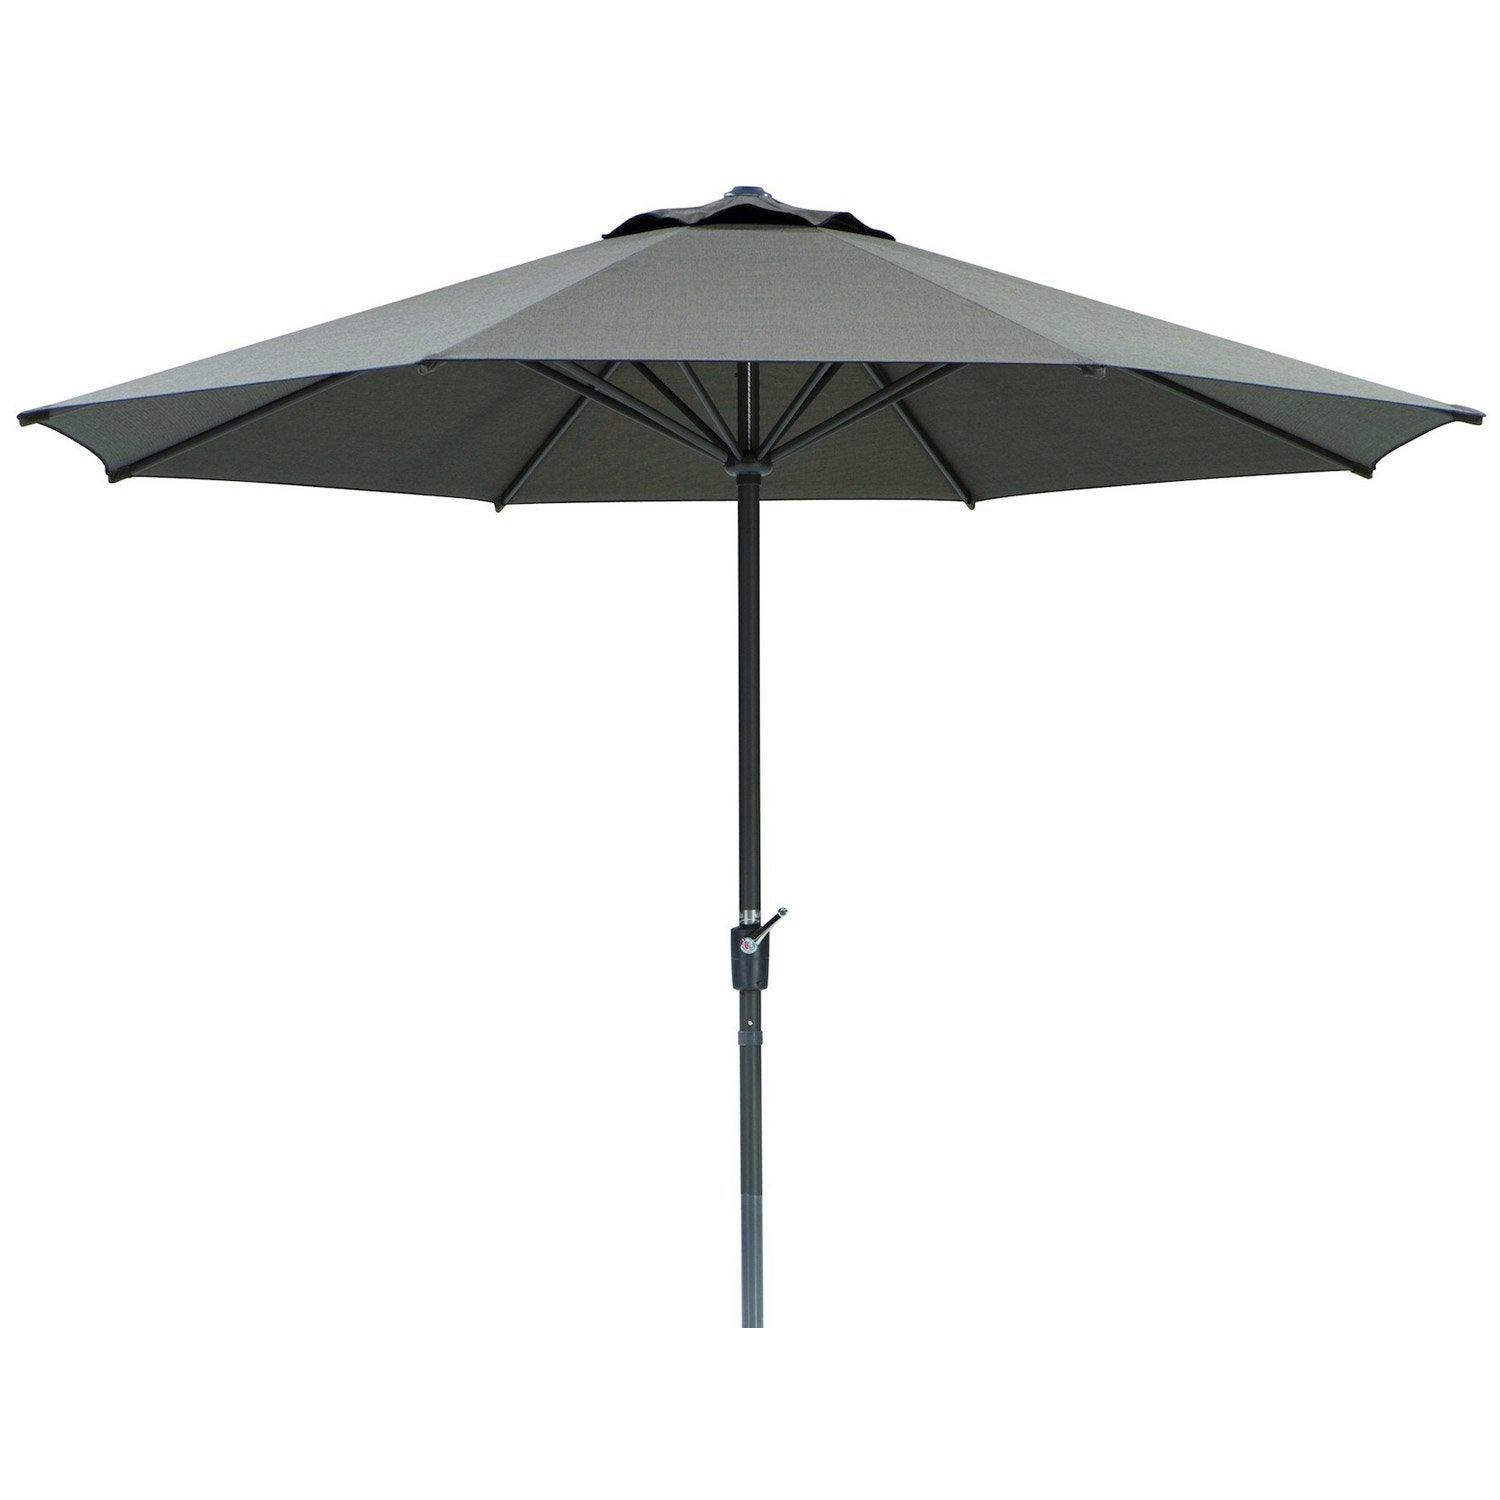 achat parasol parasol d port rond bali rouge achat vente parasol ombrage parasol d p parasol. Black Bedroom Furniture Sets. Home Design Ideas